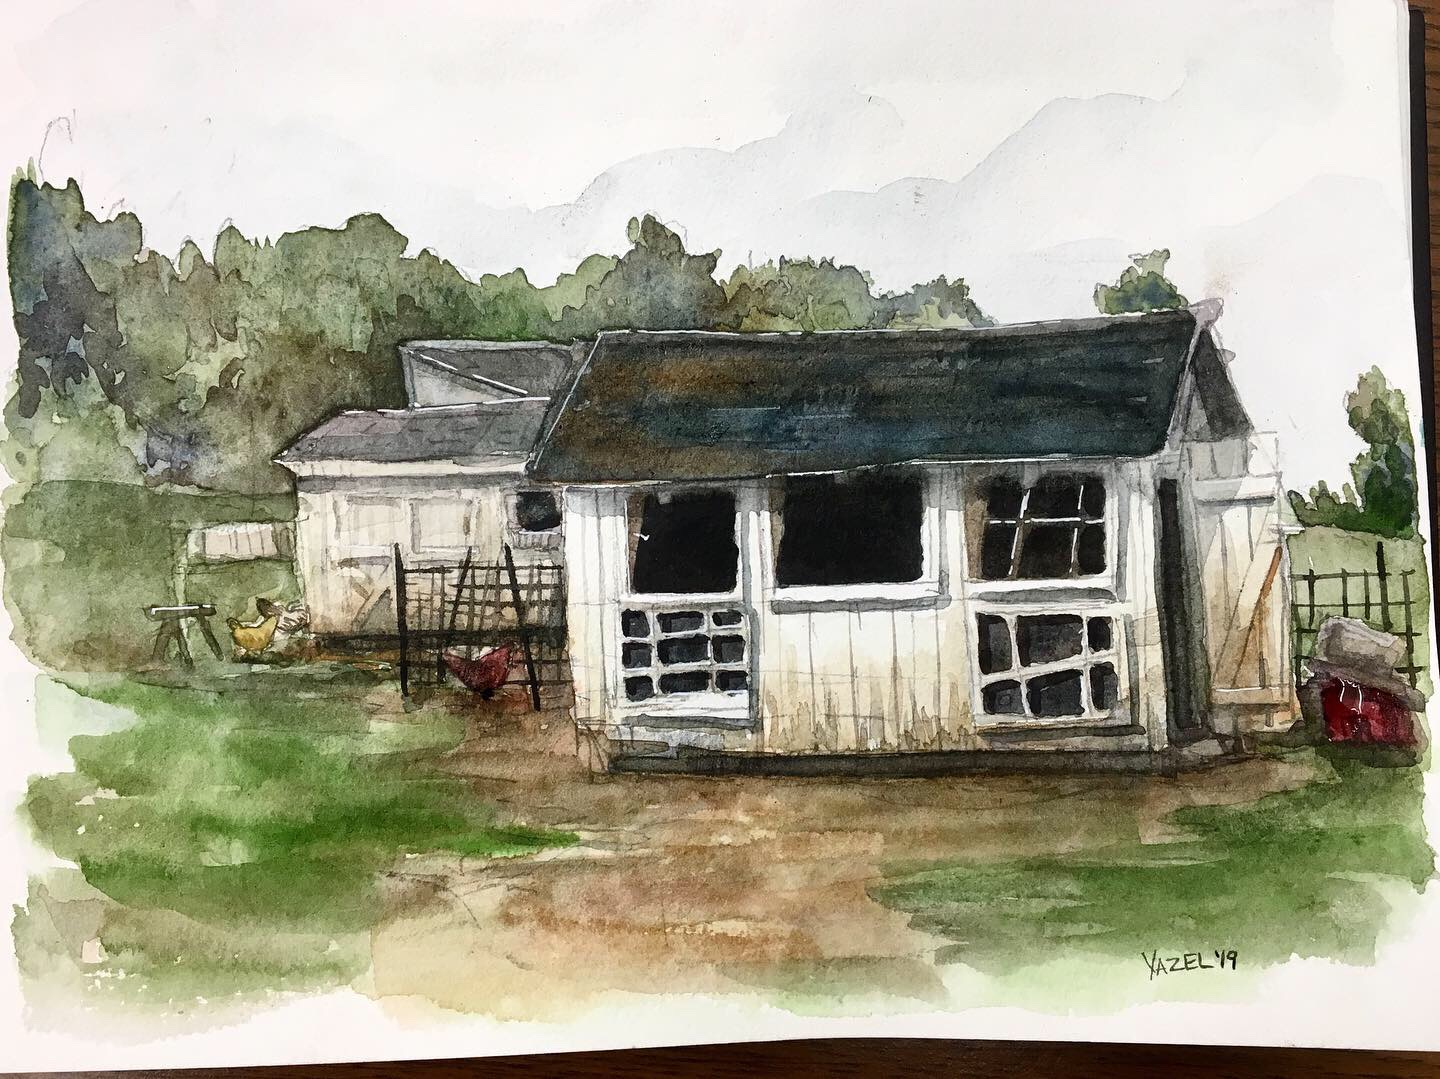 Growing up with history nerds as parents has infused me with a love of everything old, and seeing this old and tiny farm buildings just fills me with joy. They are warn out in the best ways possible and ripe for painting.